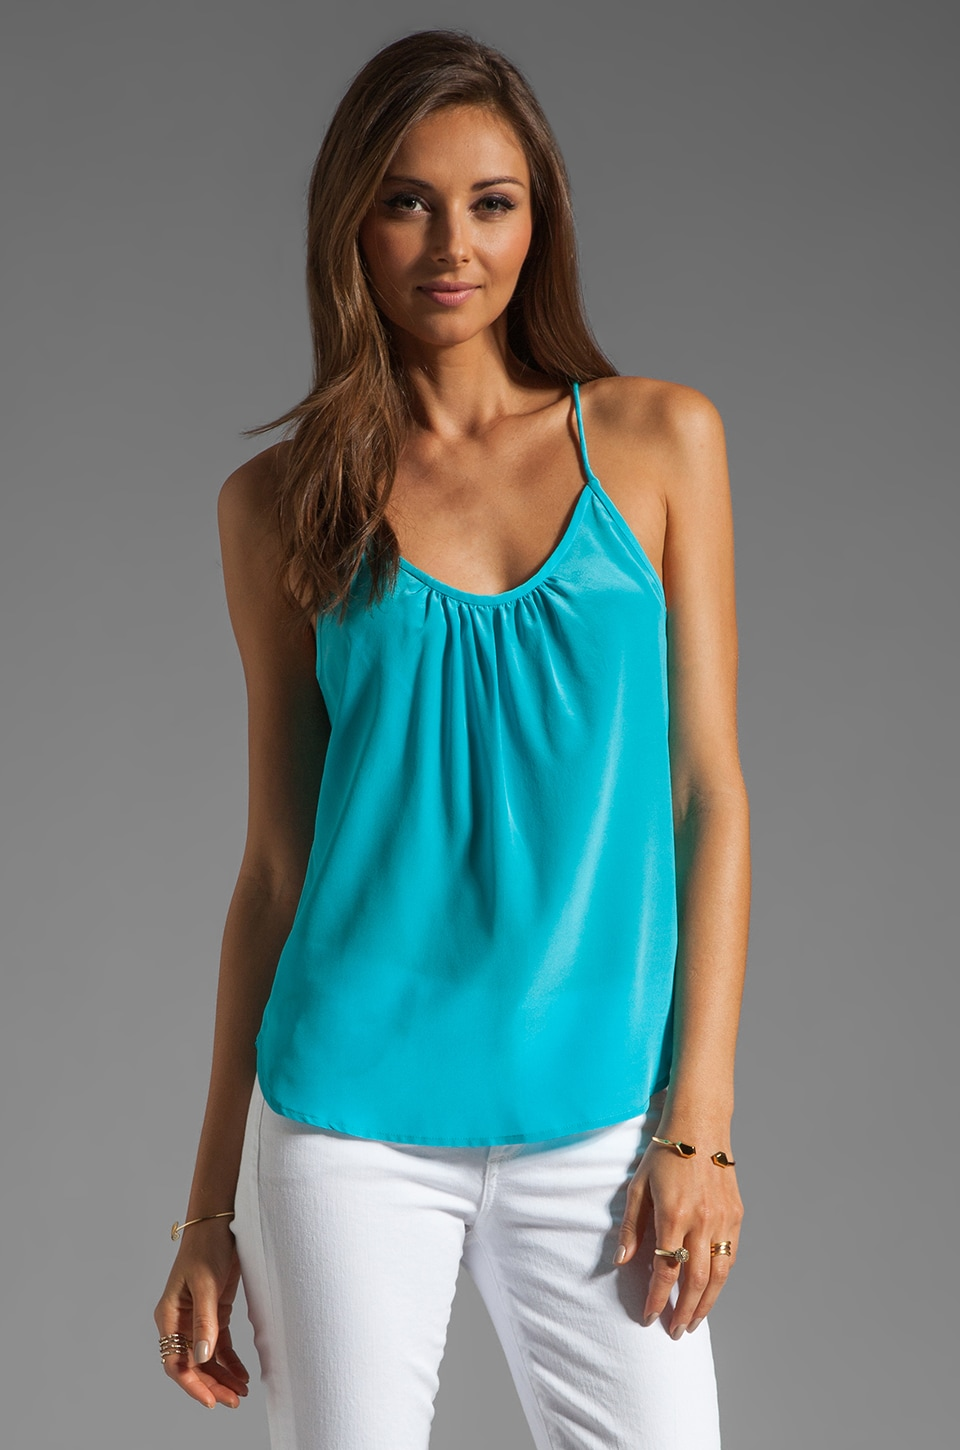 Trina Turk Solid Silk Skills Top in Biscayne Blue